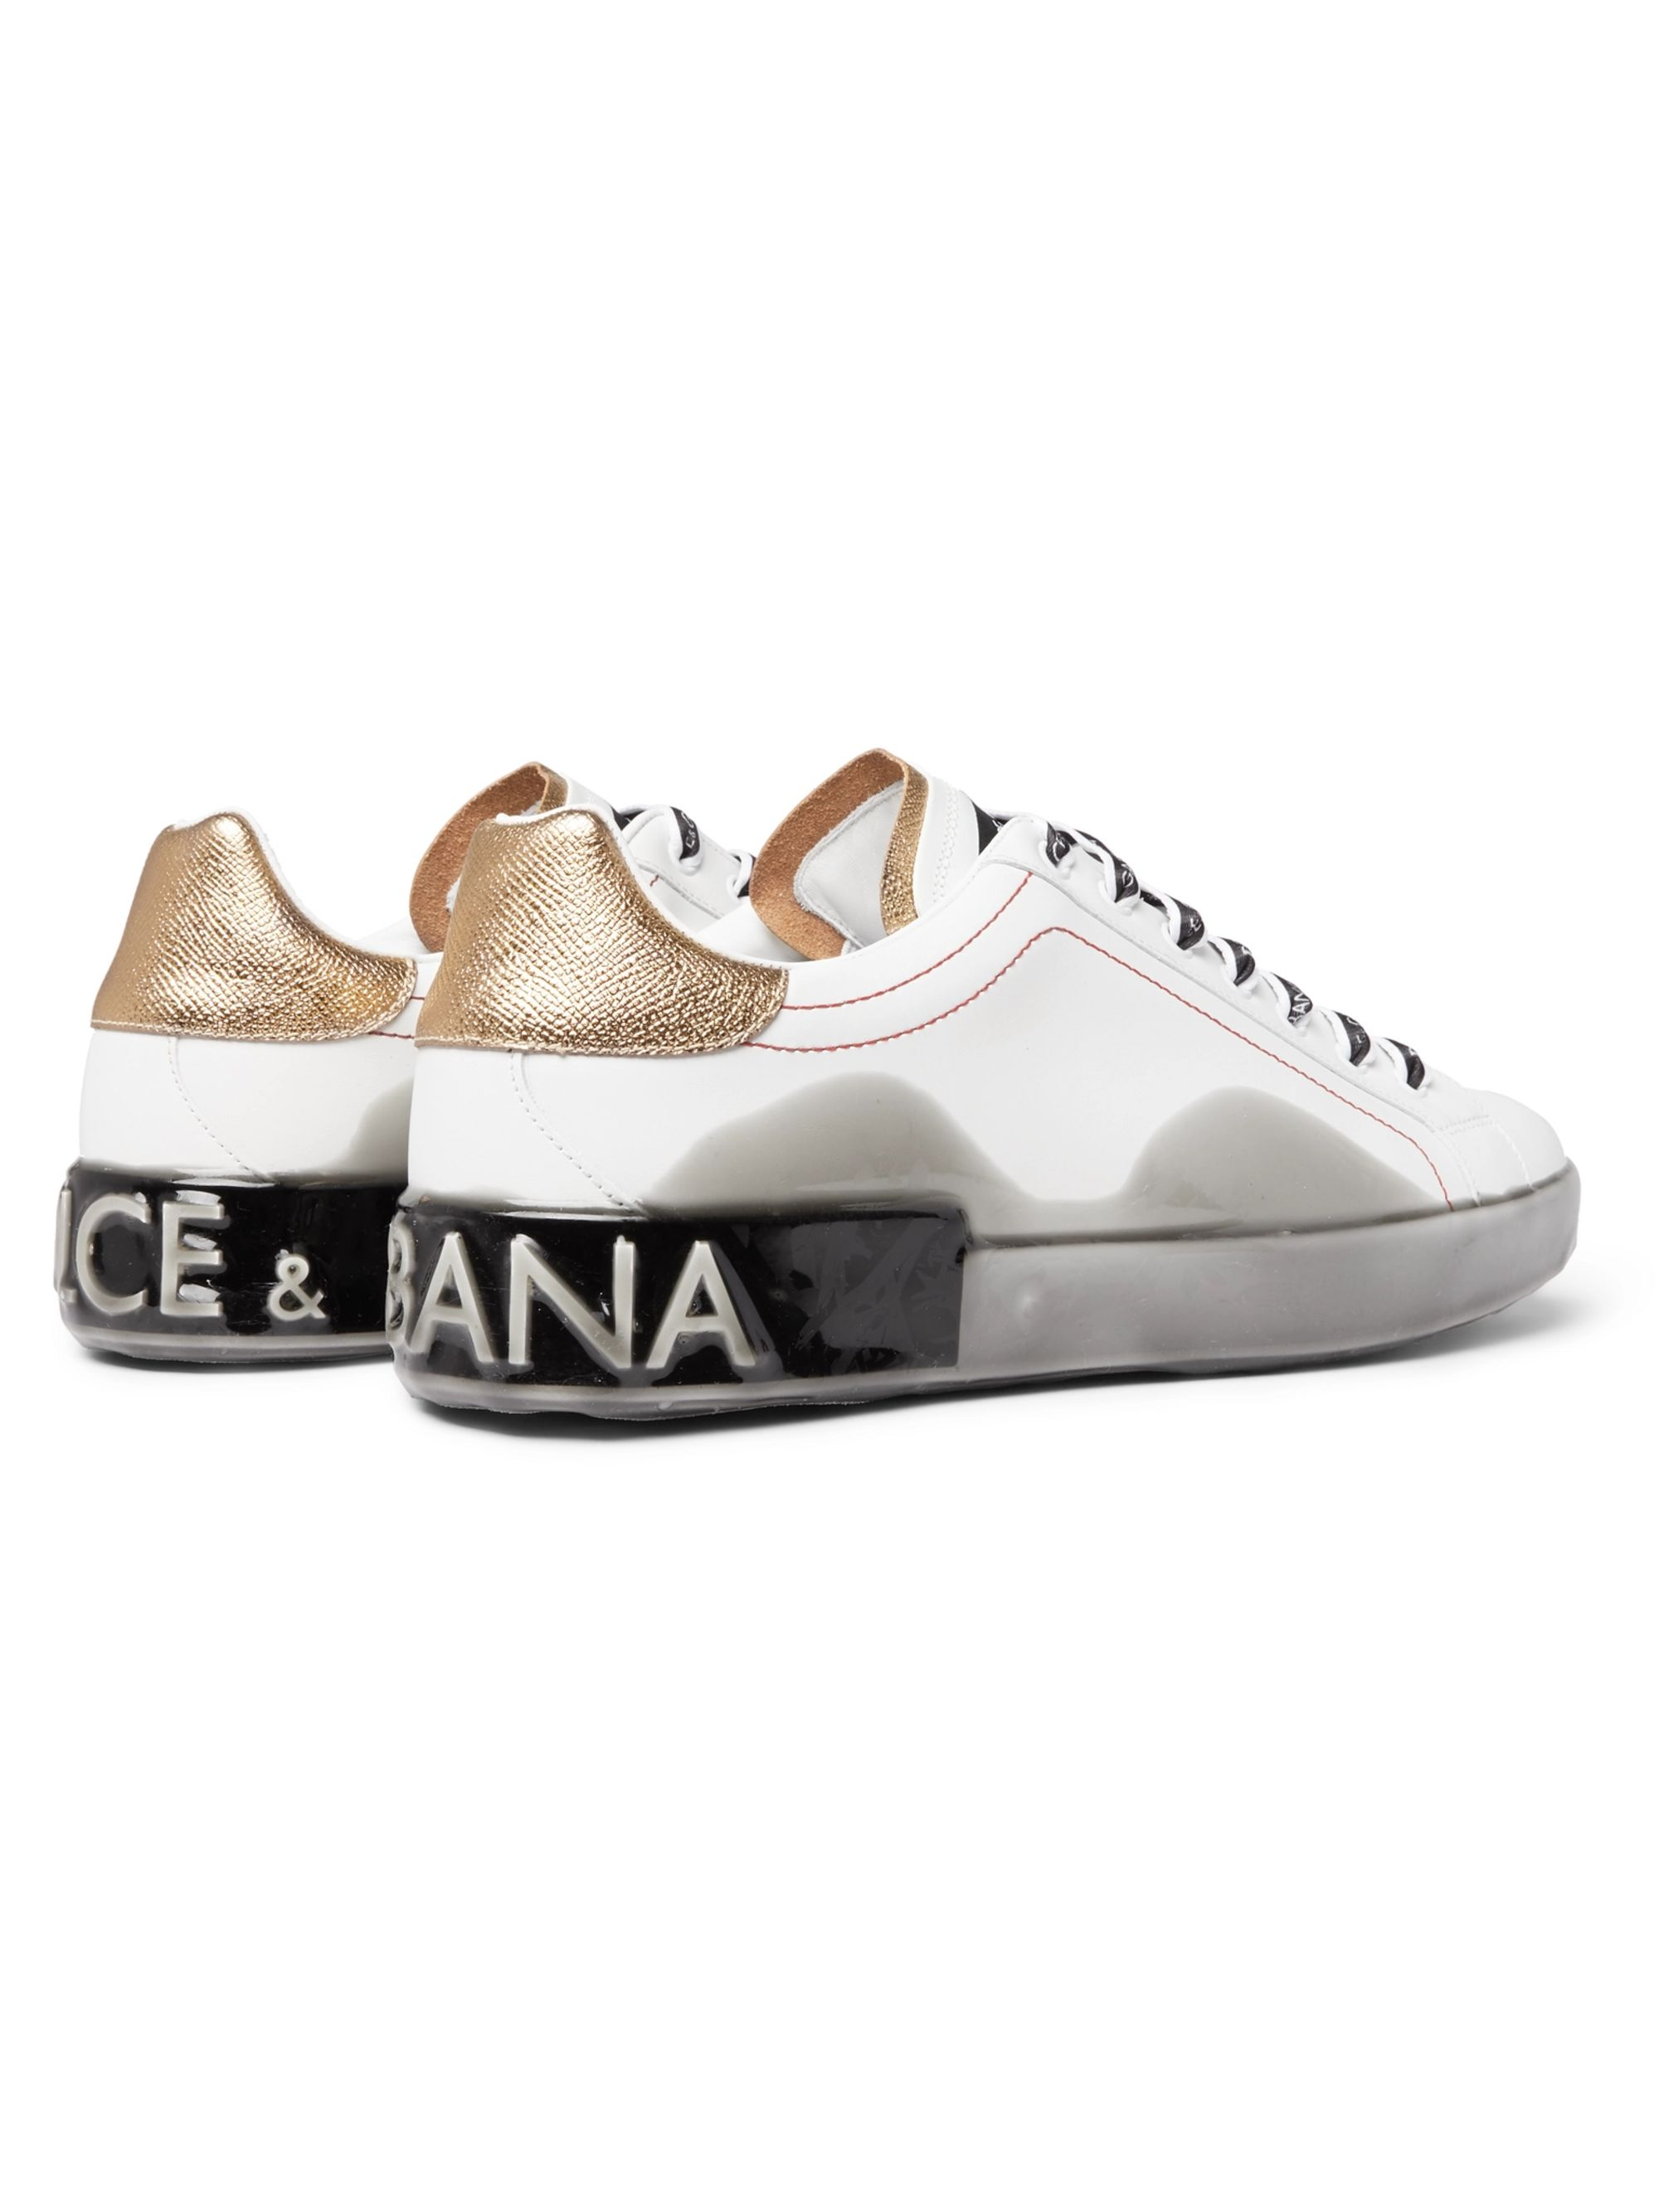 Dolce & Gabbana Metallic-Trimmed Leather and Rubber Sneakers